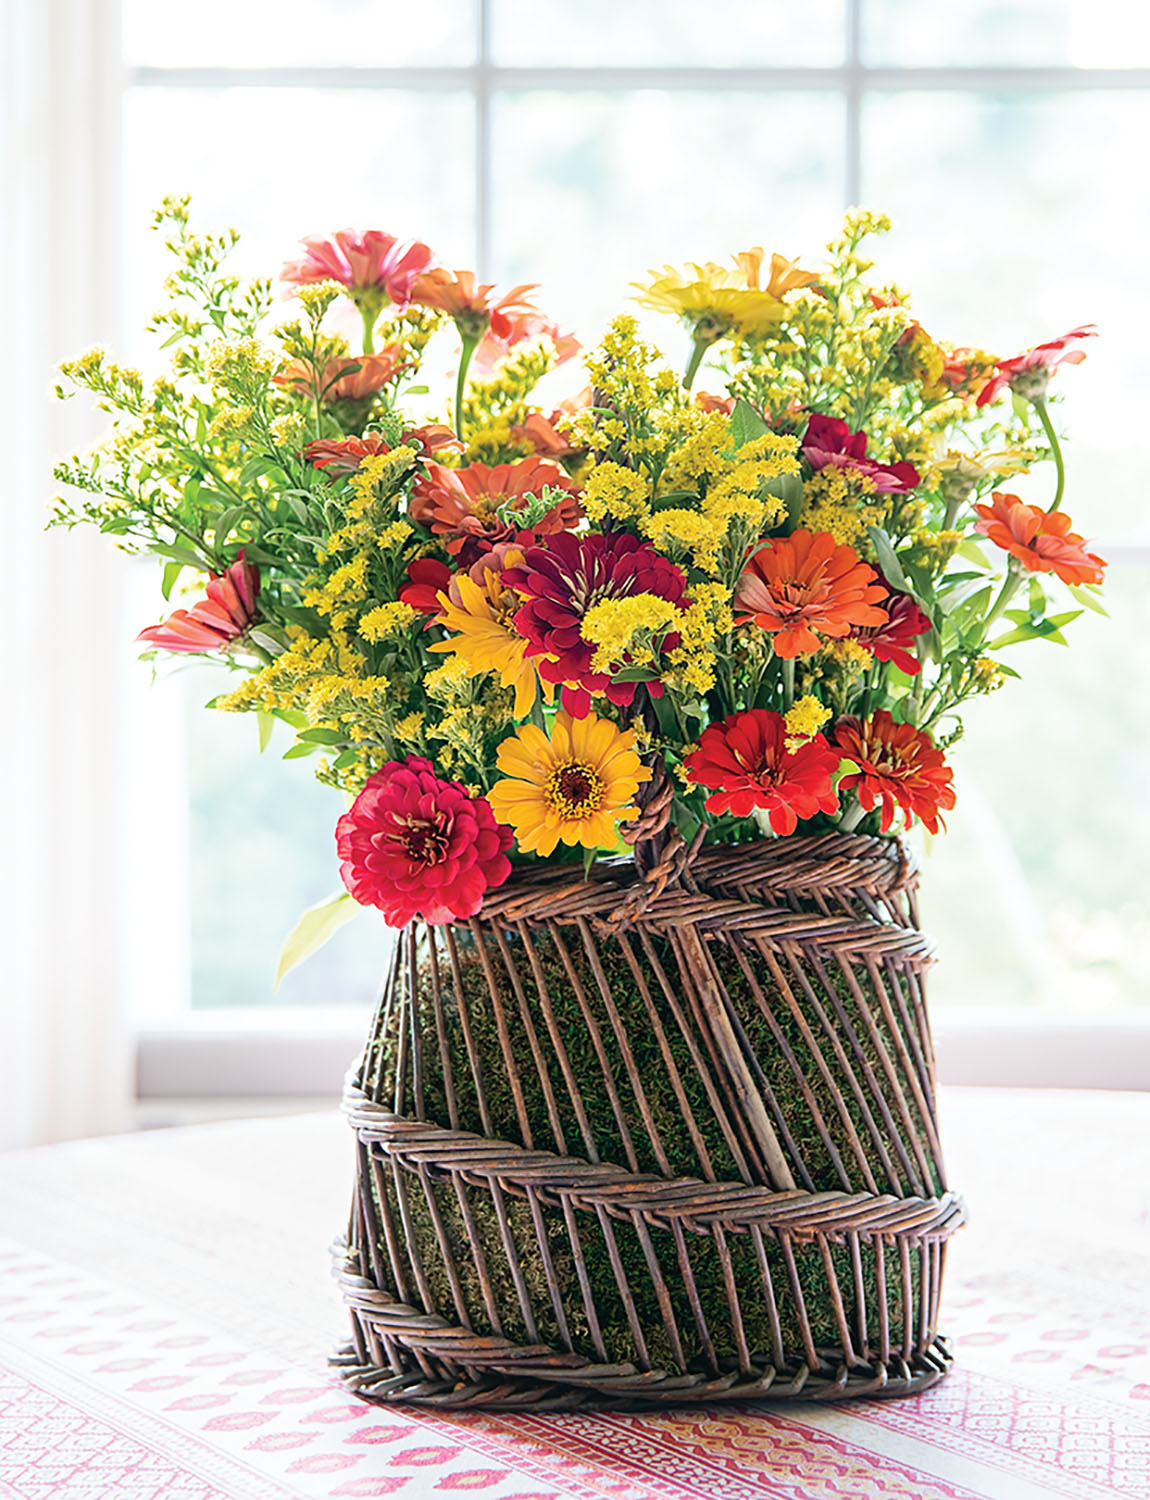 A colorful arrangement in a basket, from the pages of CHARLOTTE MOSS FLOWERS